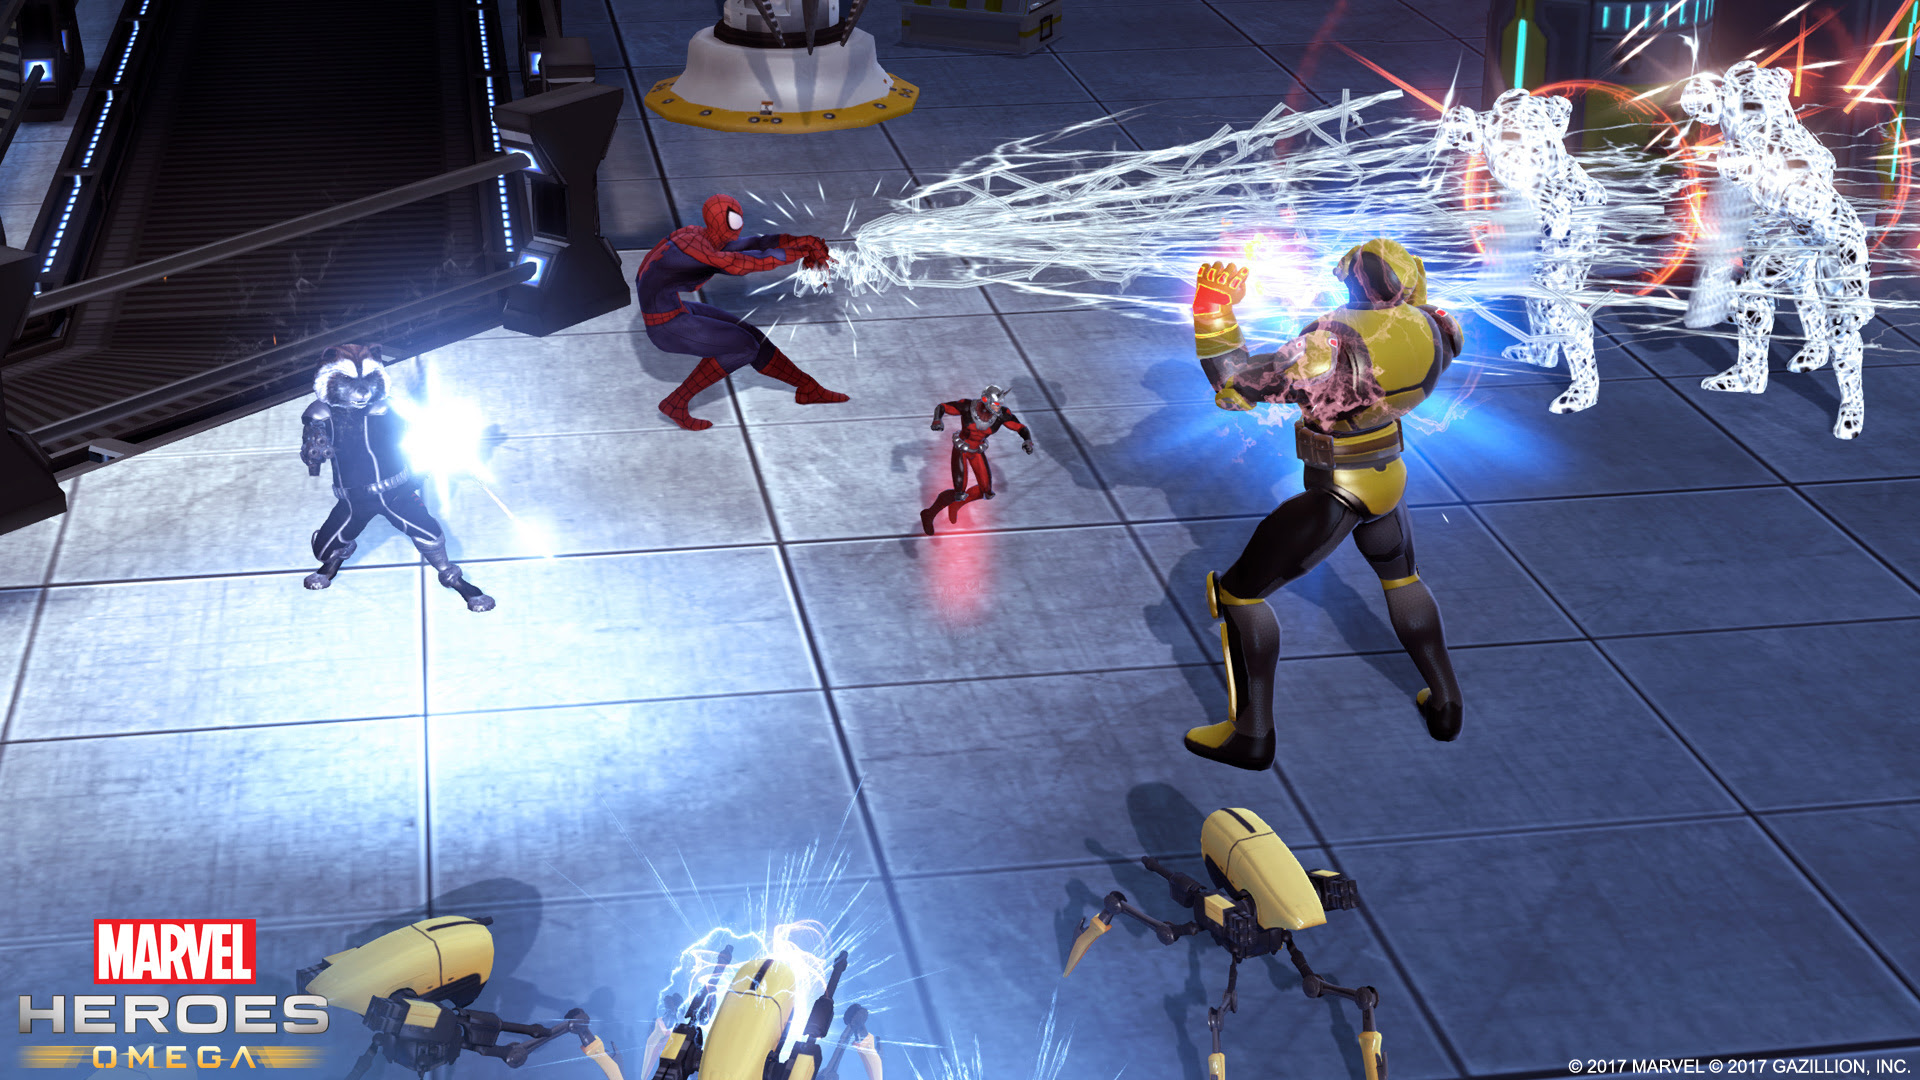 The Marvel Heroes Omega open beta hits PS4 tomorrow screenshot